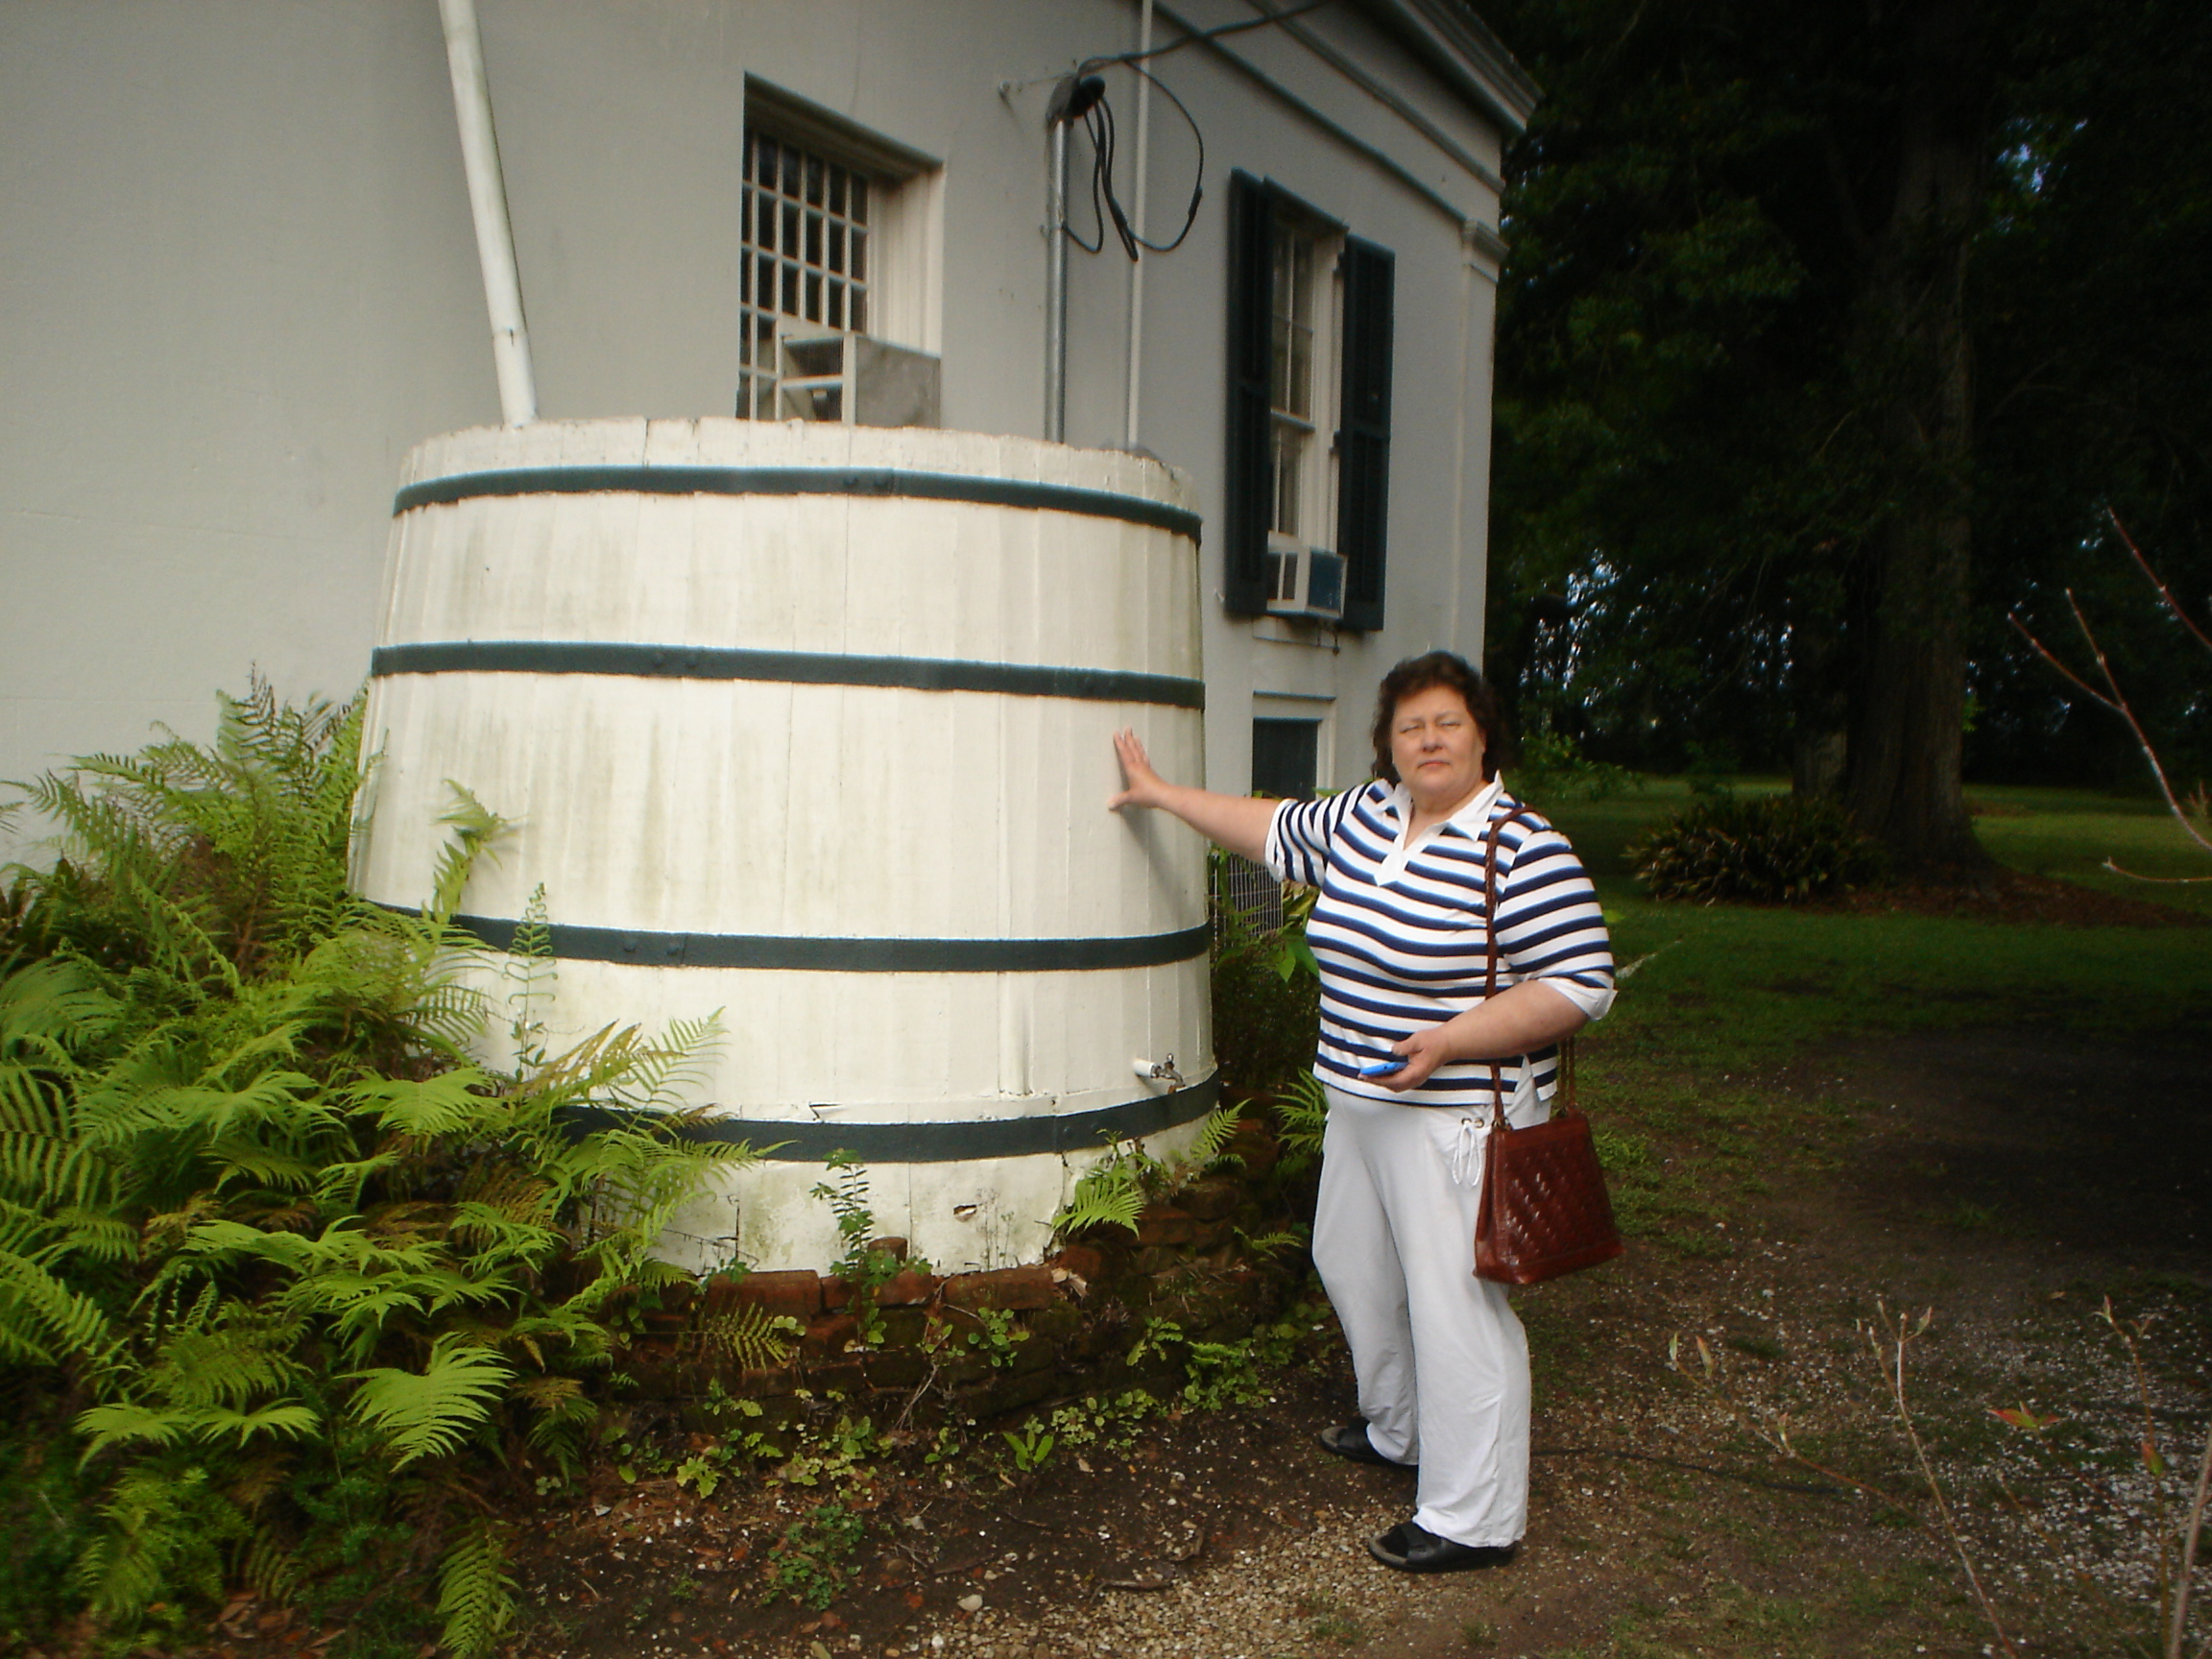 Look at this giant water barrel!